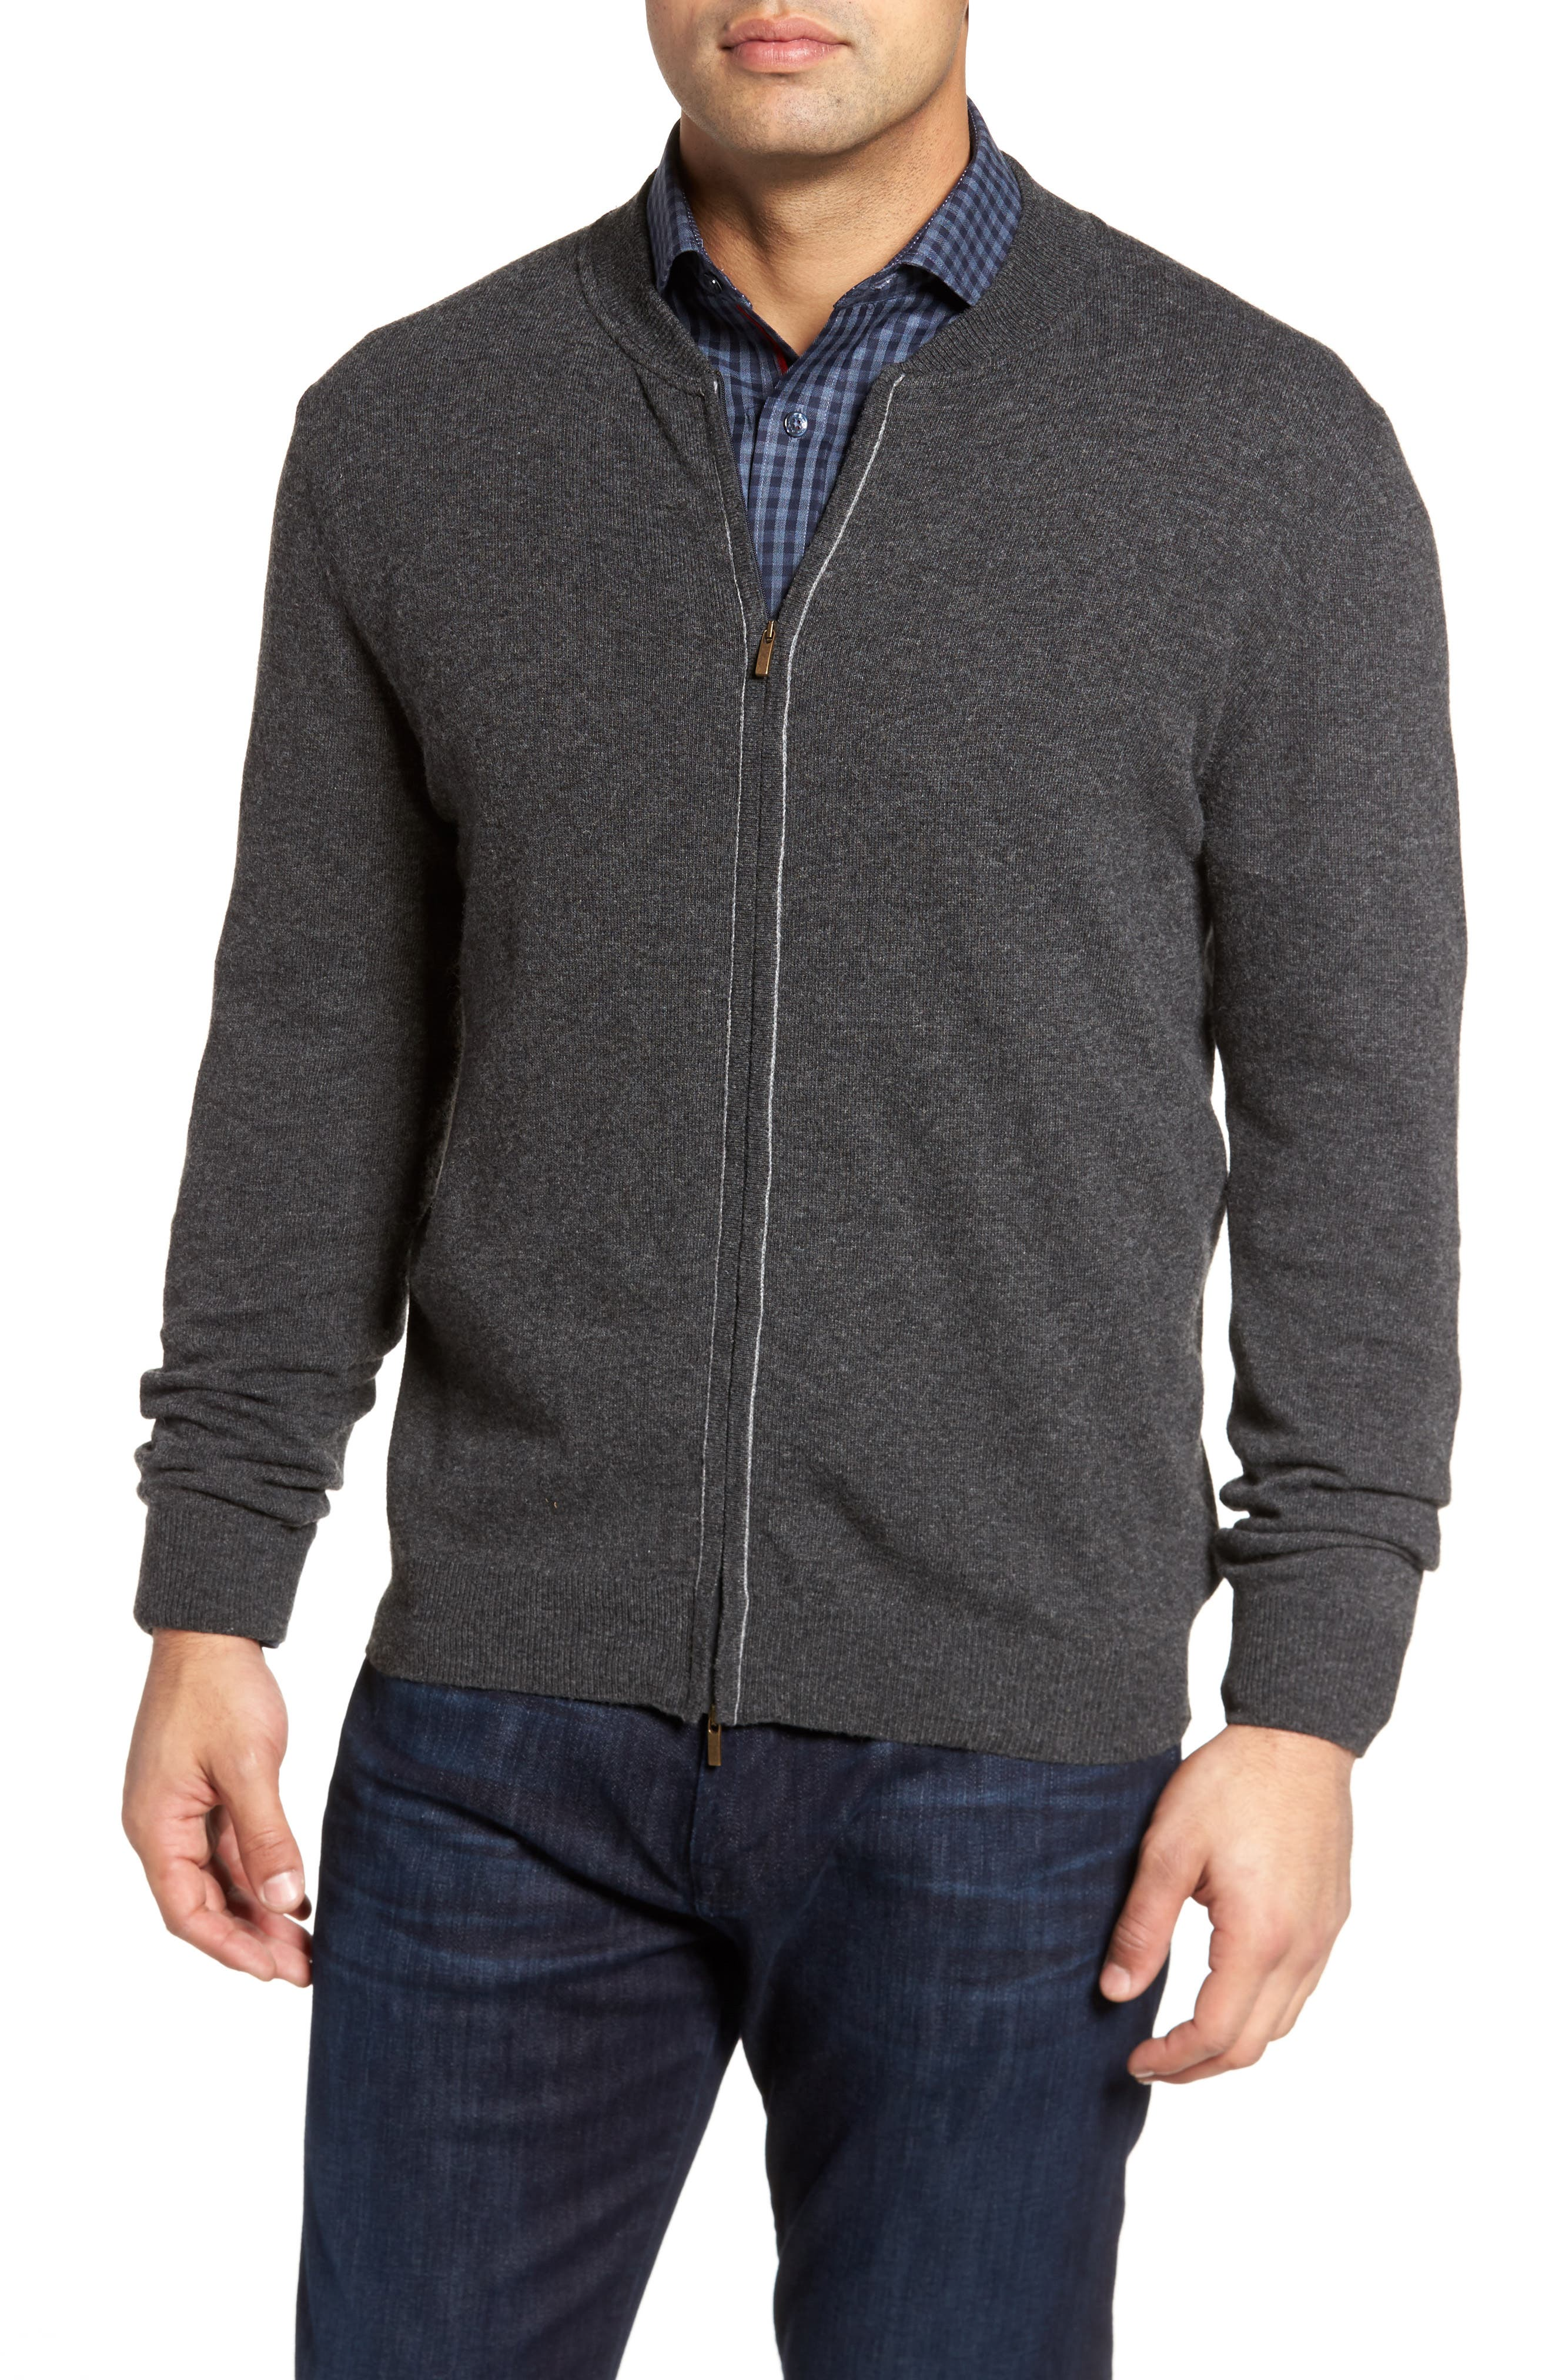 Zip Sweater,                             Main thumbnail 1, color,                             Graphite